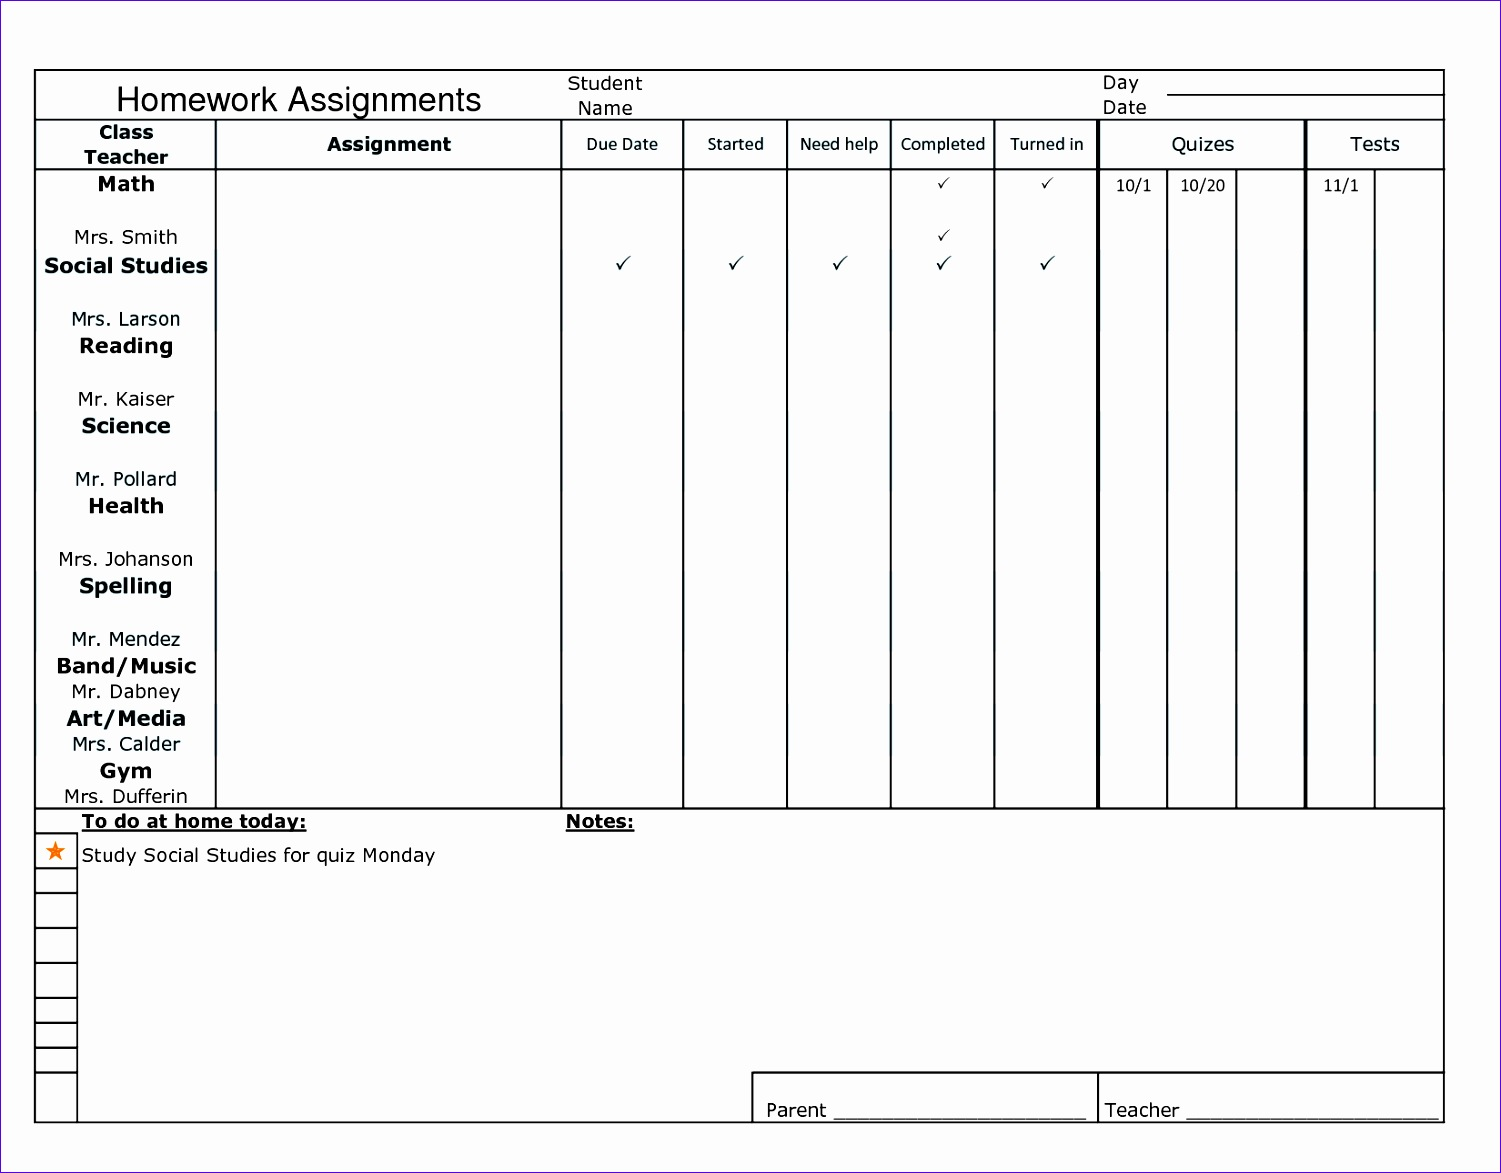 Raci Model Template Excel Bhtdc Unique assignment Tracker Template Template